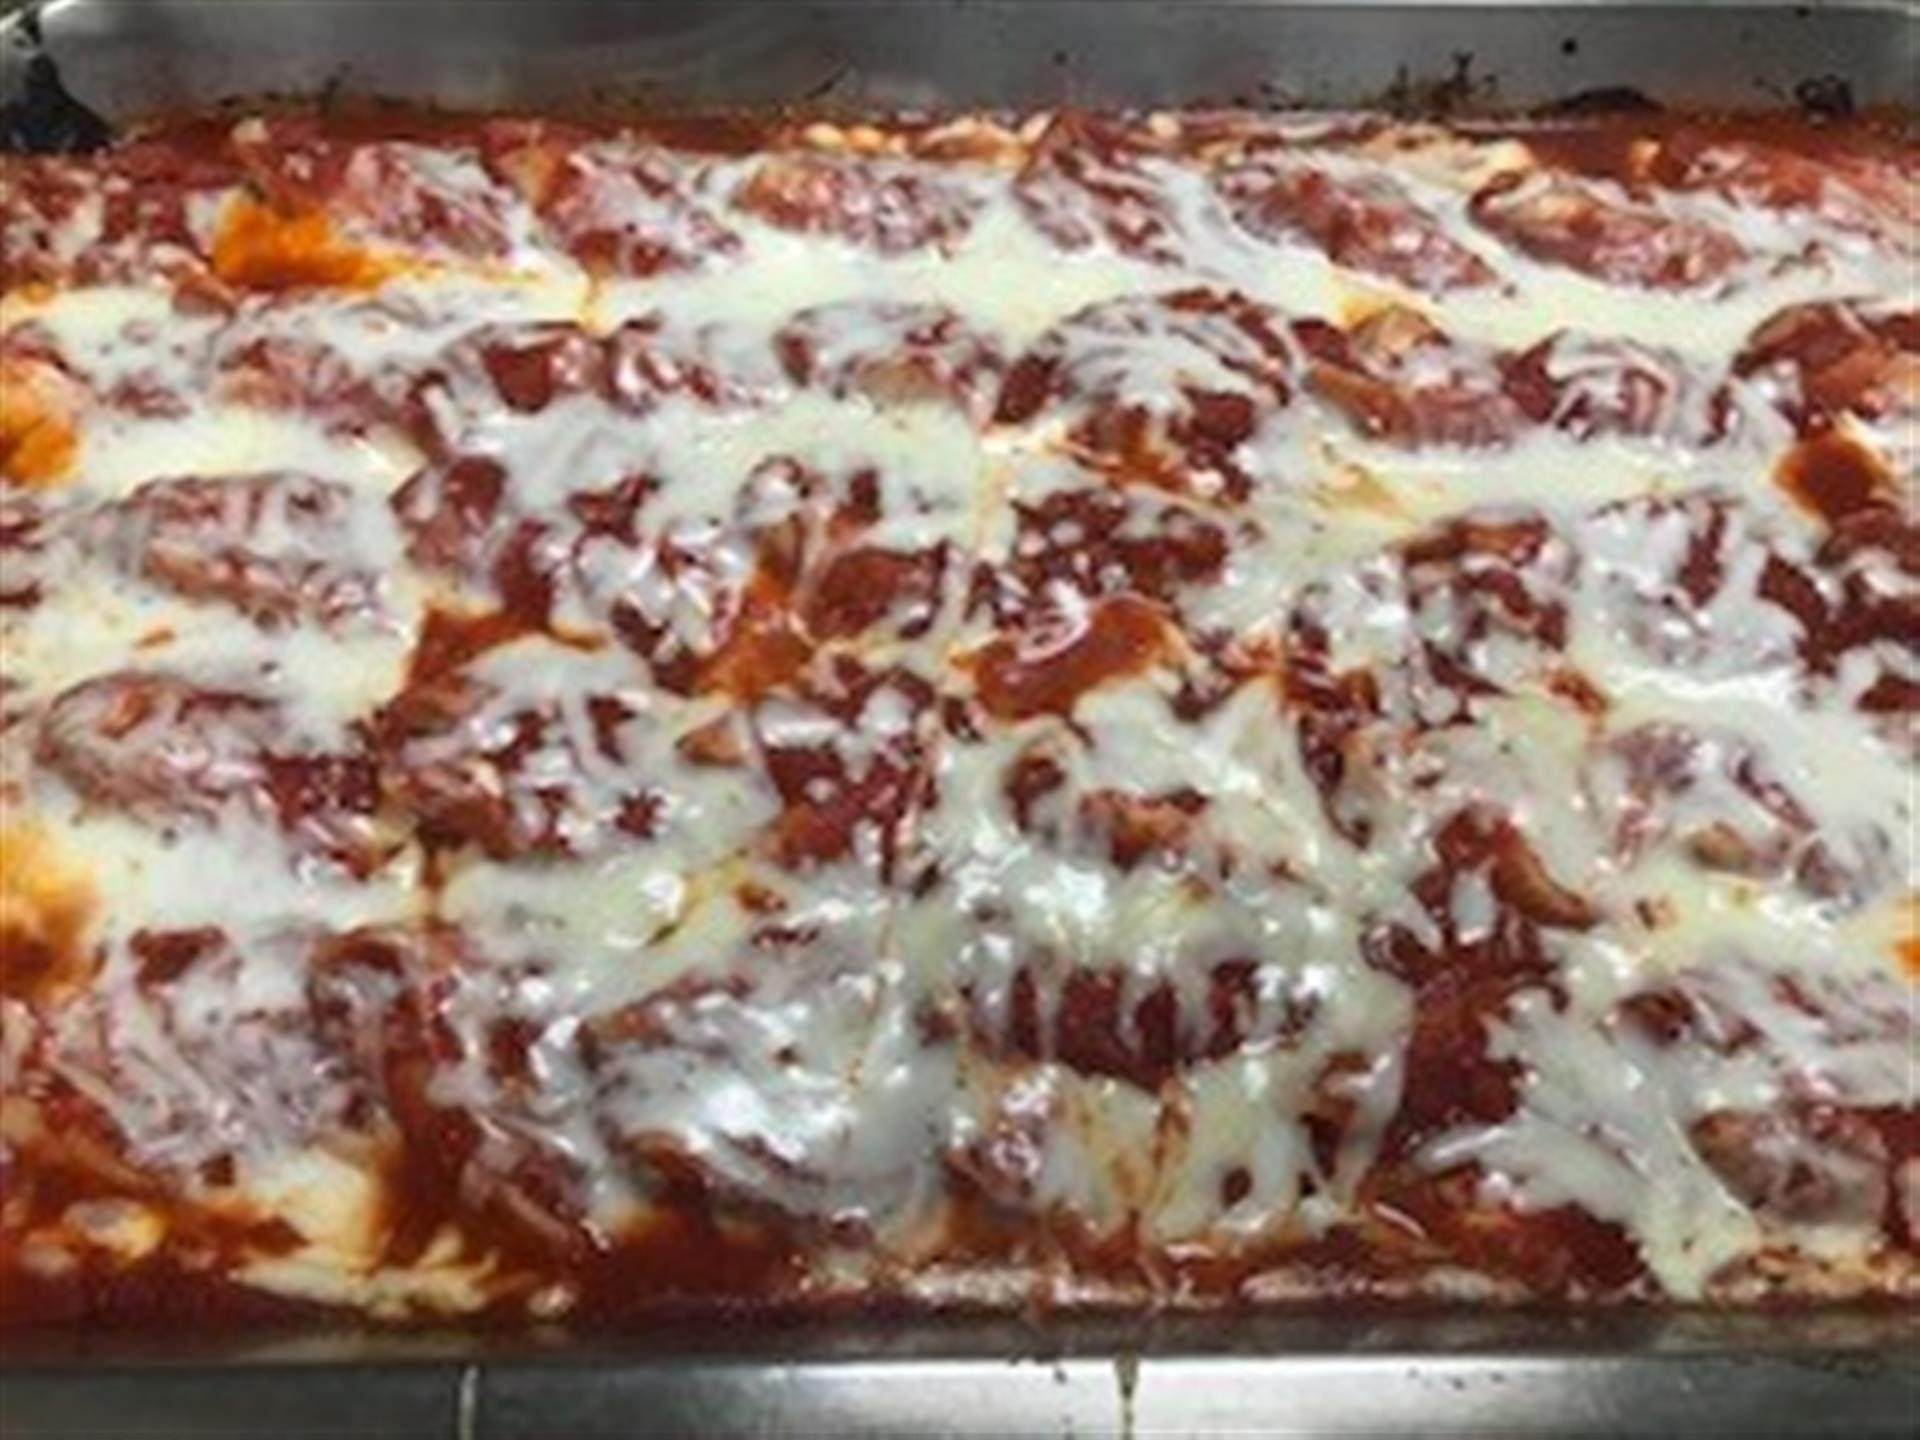 Tray of Chicken Parmesan. Breaded white-meat chicken cooked to perfection, covered in our signature homemade marinara sauce, imported house-grated Romano cheese, and melted mozzarella